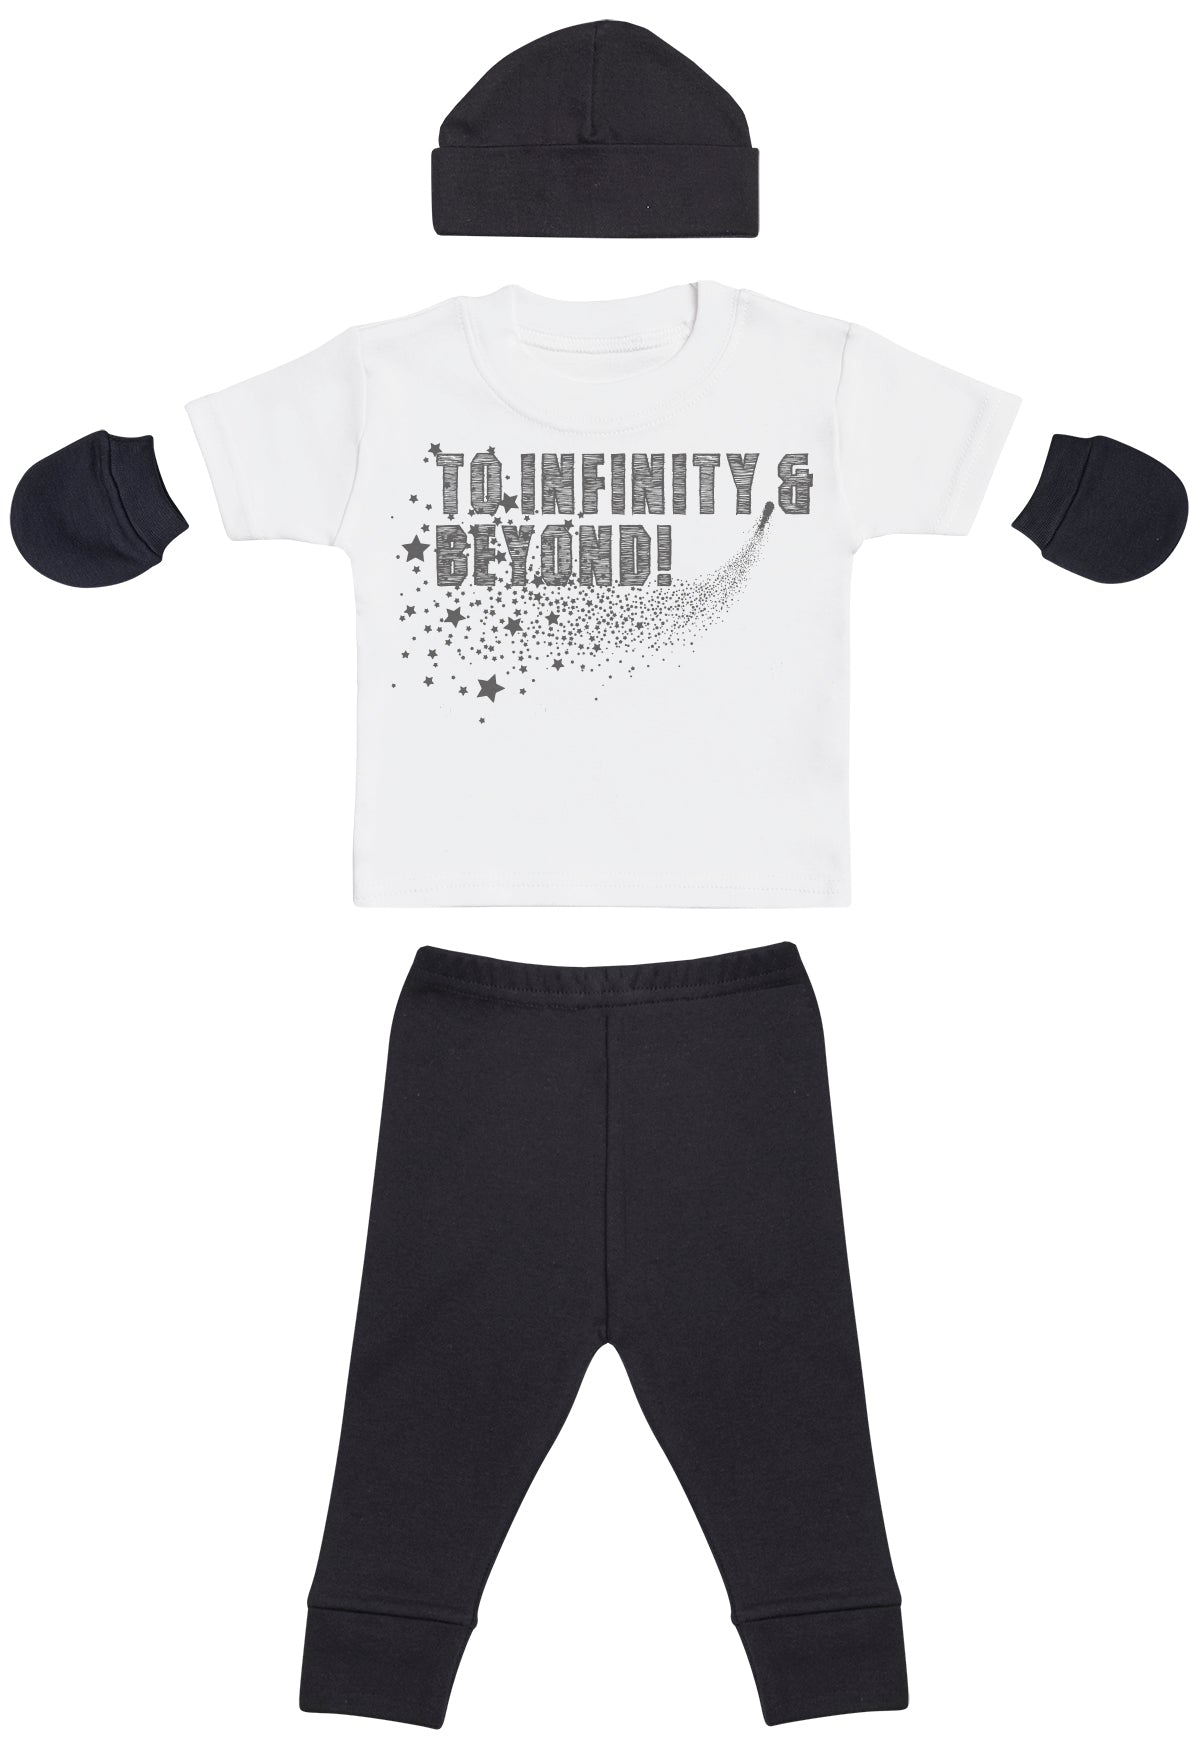 To Infinity & Beyond, White Baby T-Shirt, Black Baby Bottoms, Black Baby Mittens, Black Baby Bean Hat, Baby Outfit Gift Set